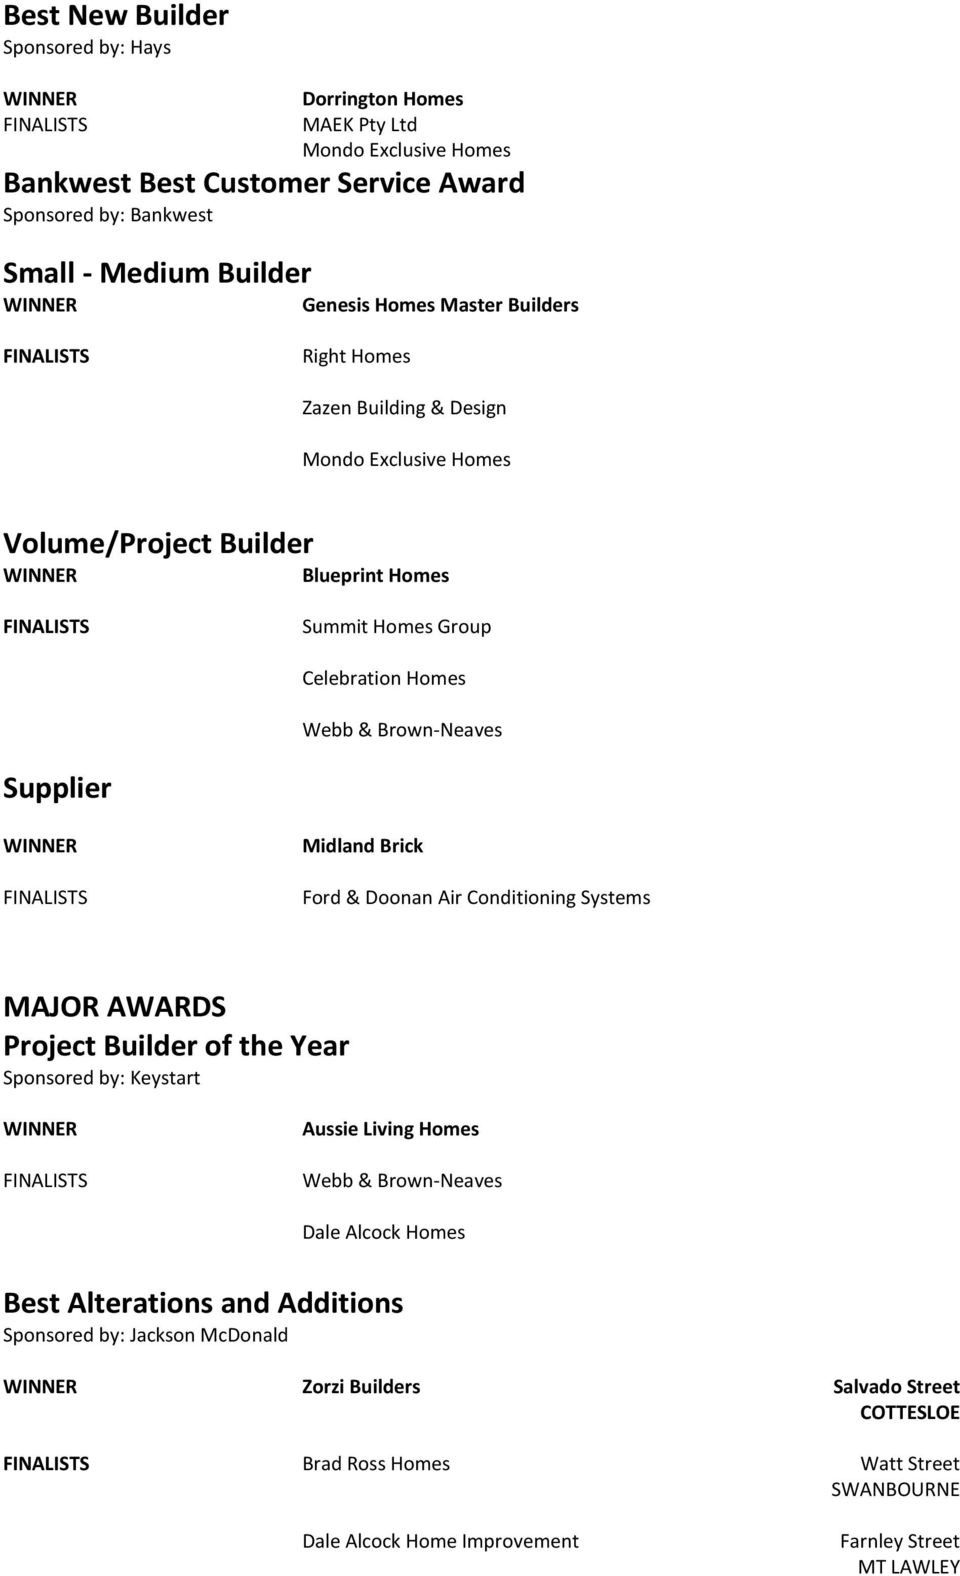 FINALISTS Midland Brick Ford & Doonan Air Conditioning Systems MAJOR AWARDS Project Builder of the Year Sponsored by: Keystart FINALISTS Aussie Living Homes Webb & Brown-Neaves Dale Alcock Homes